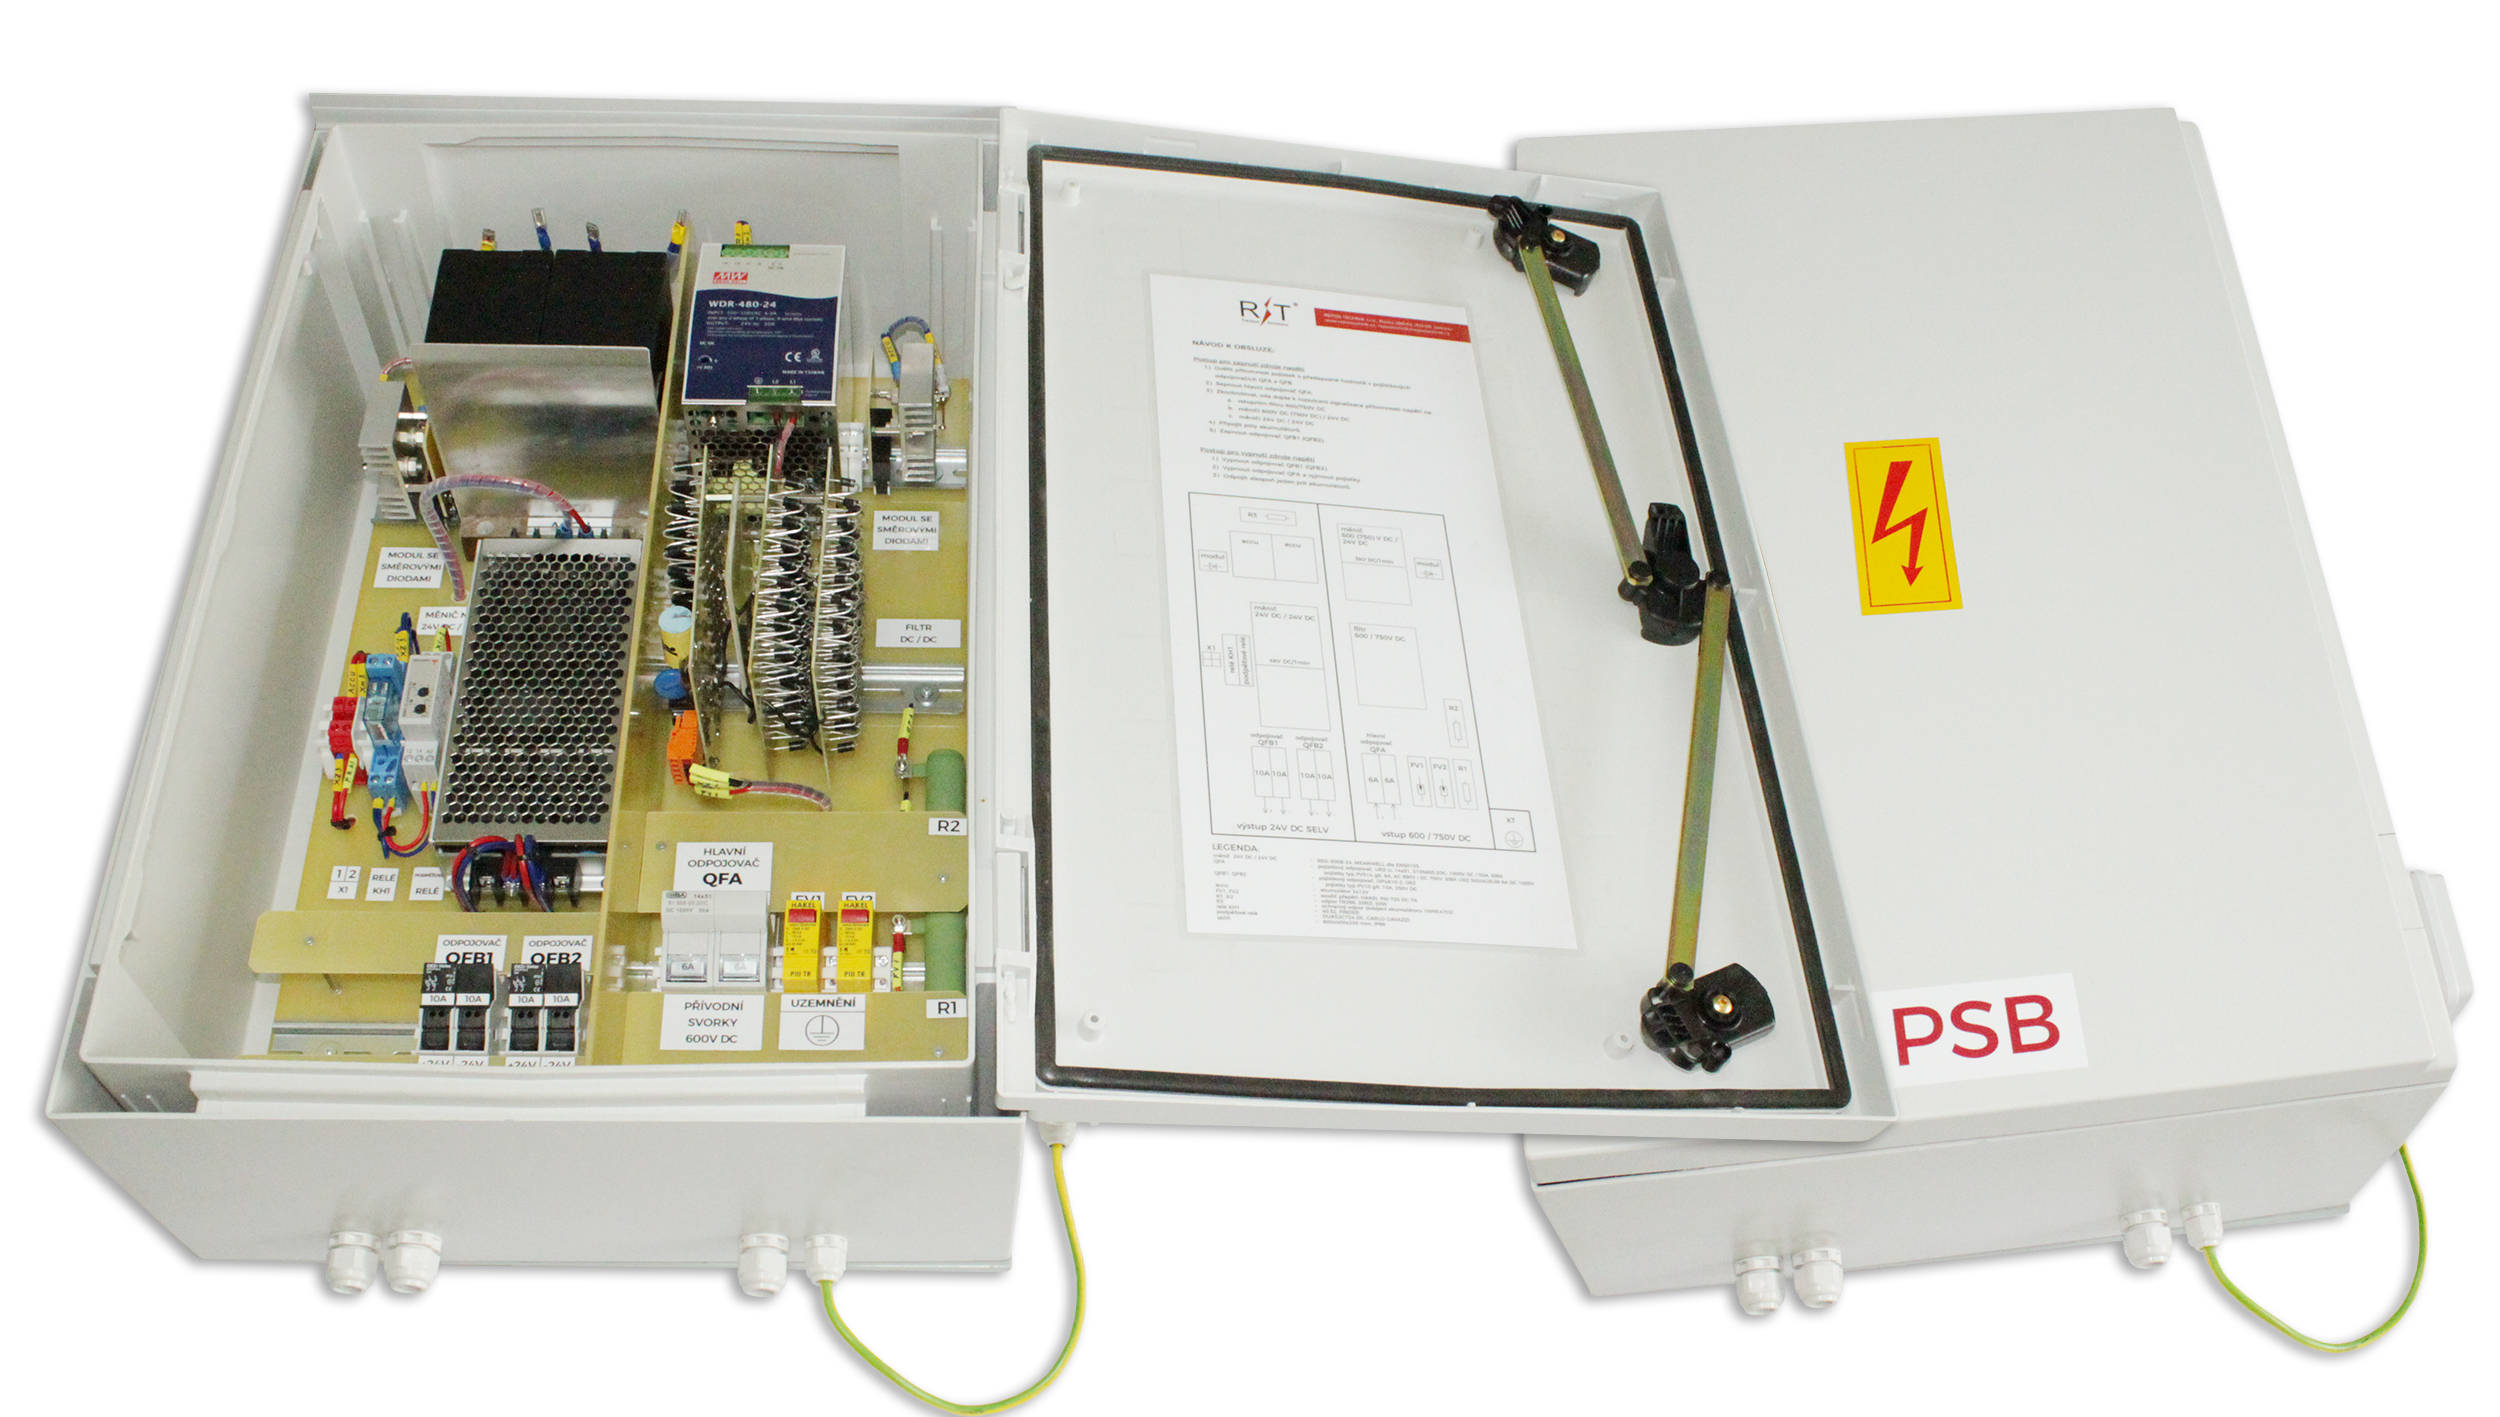 PSB - traction system power source